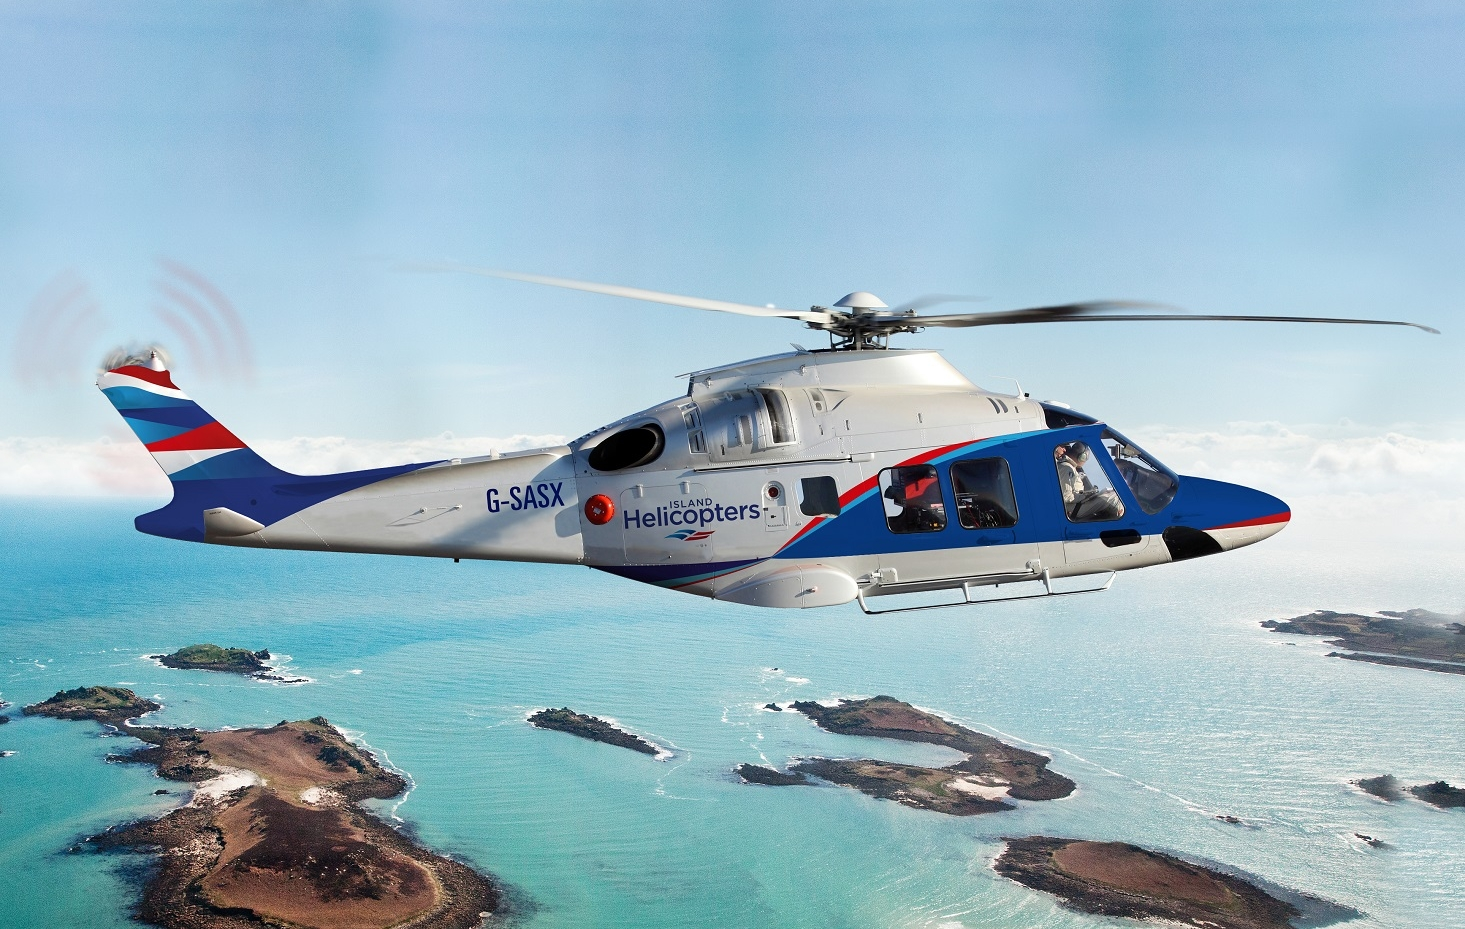 The 10-seater AW169 aircraft is due to start regular scheduled flights to Scilly this May.